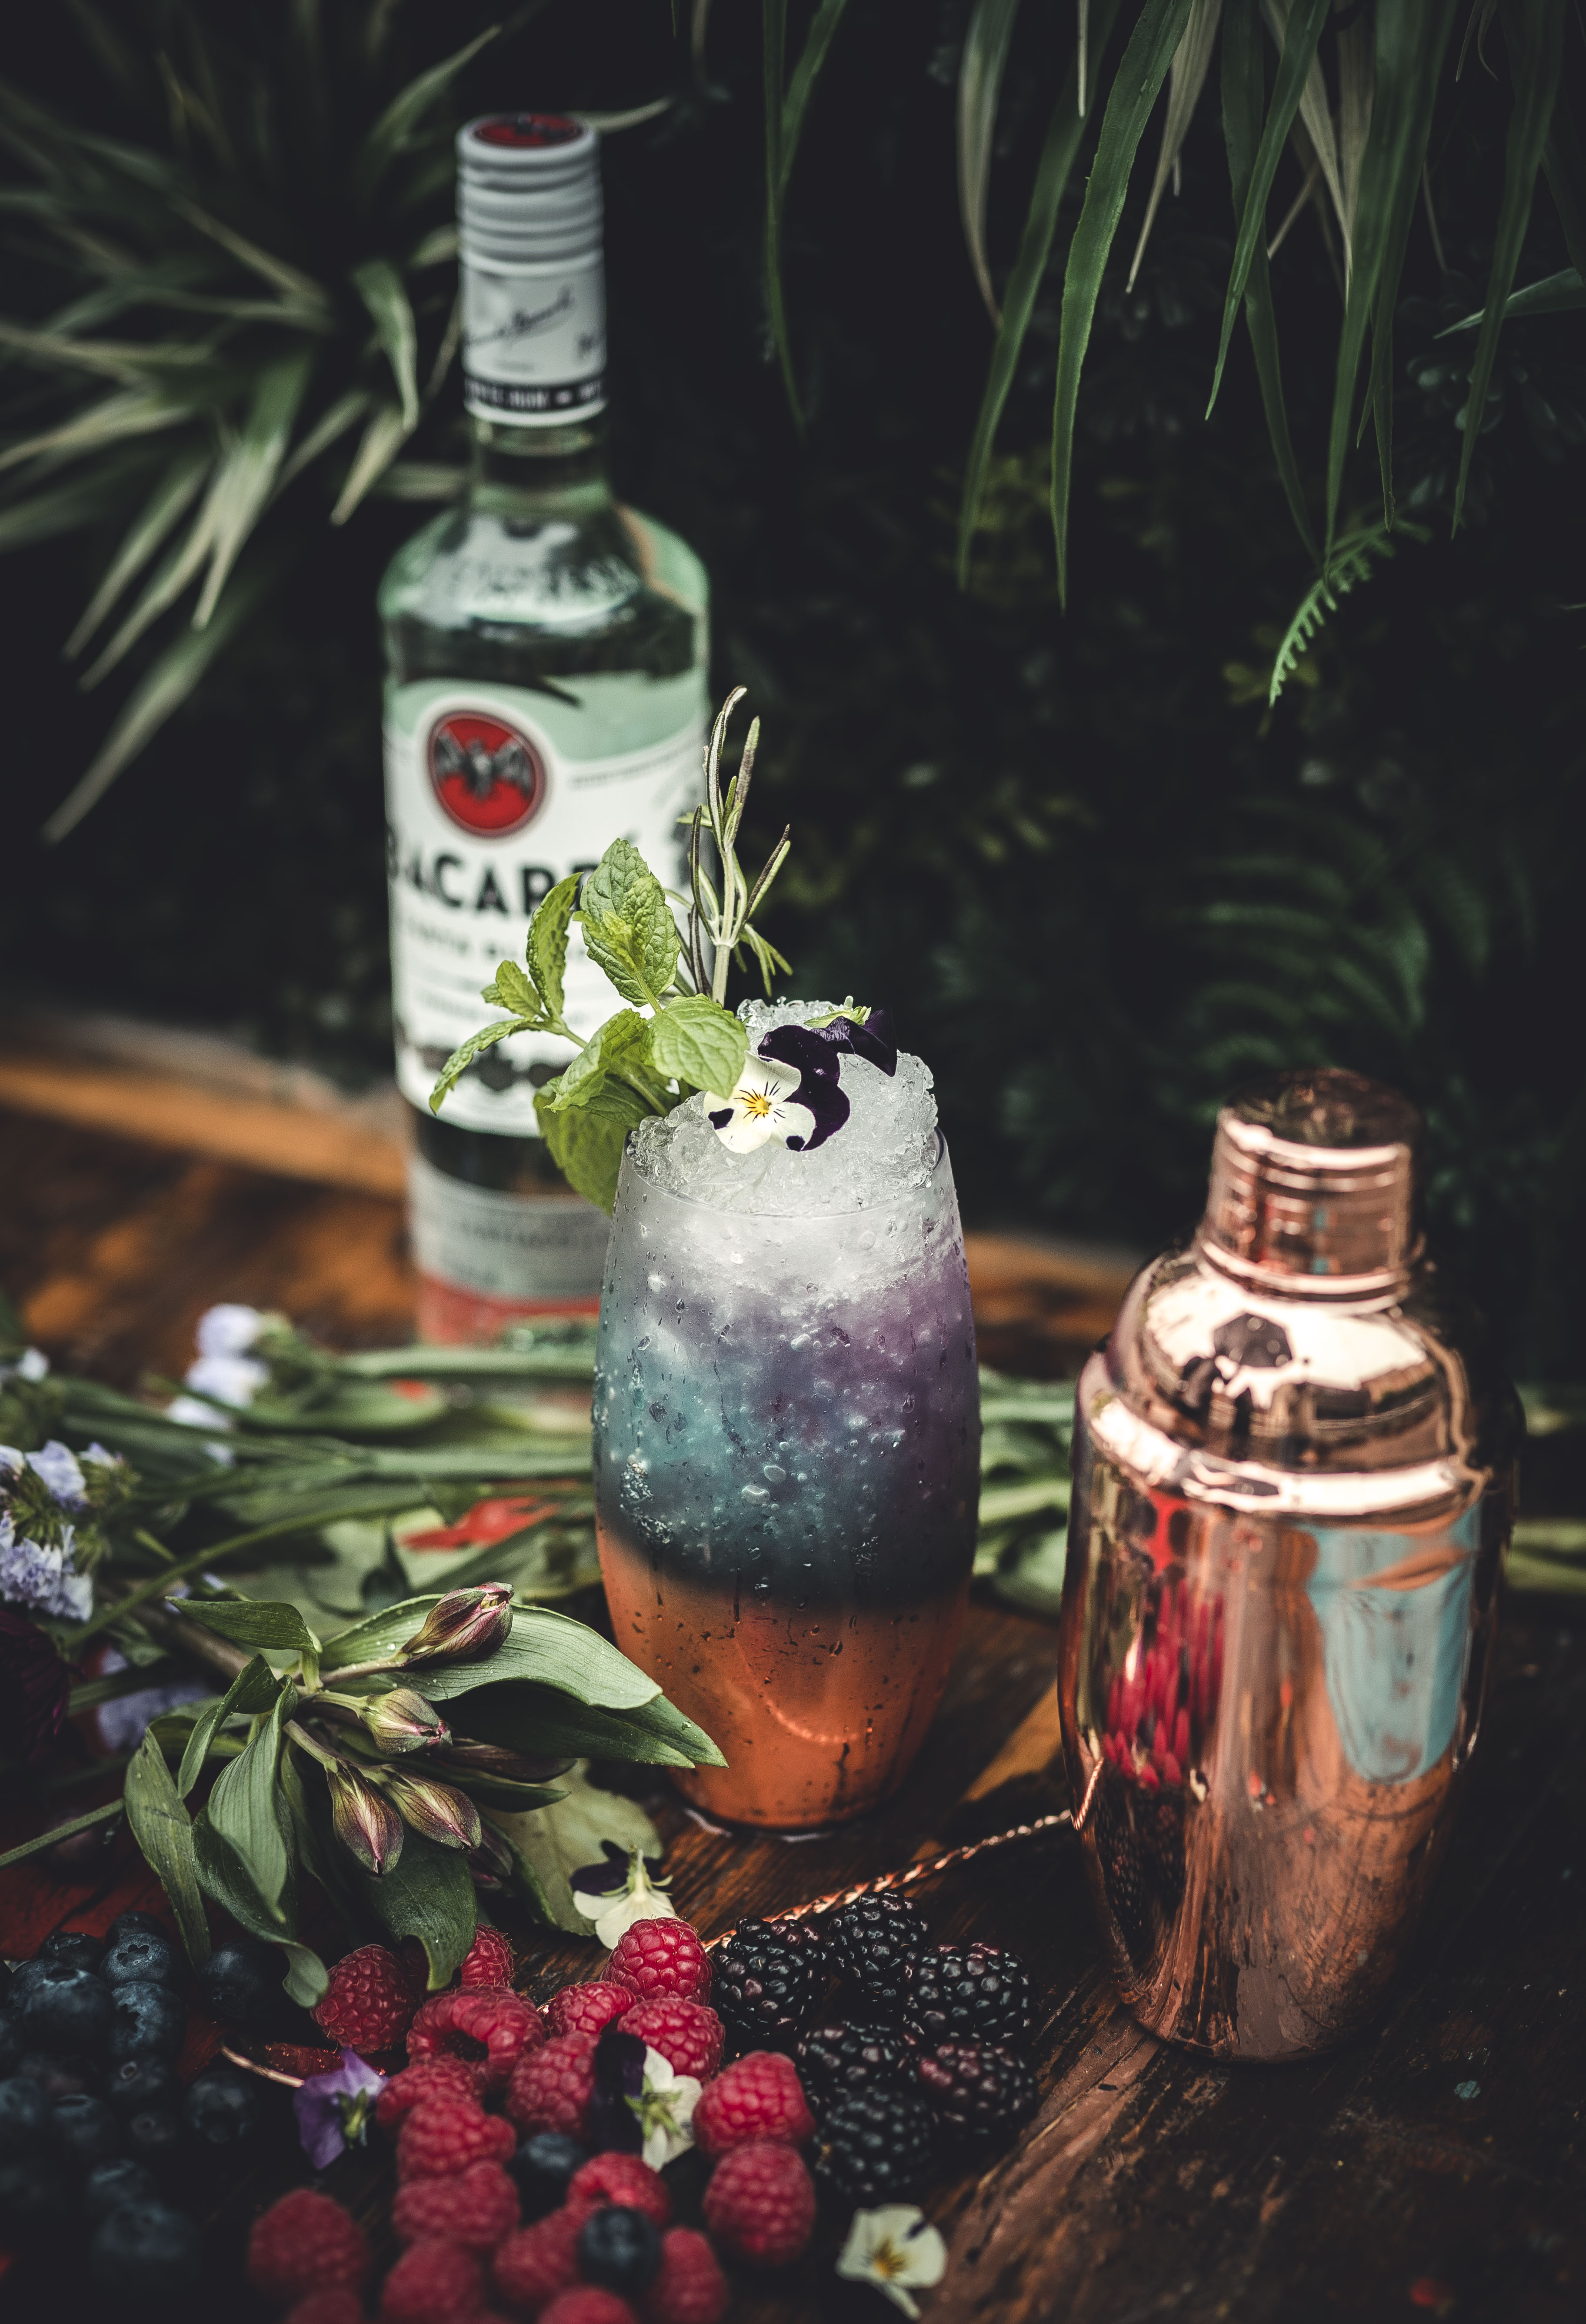 The Summer Cocktail Experience Festival